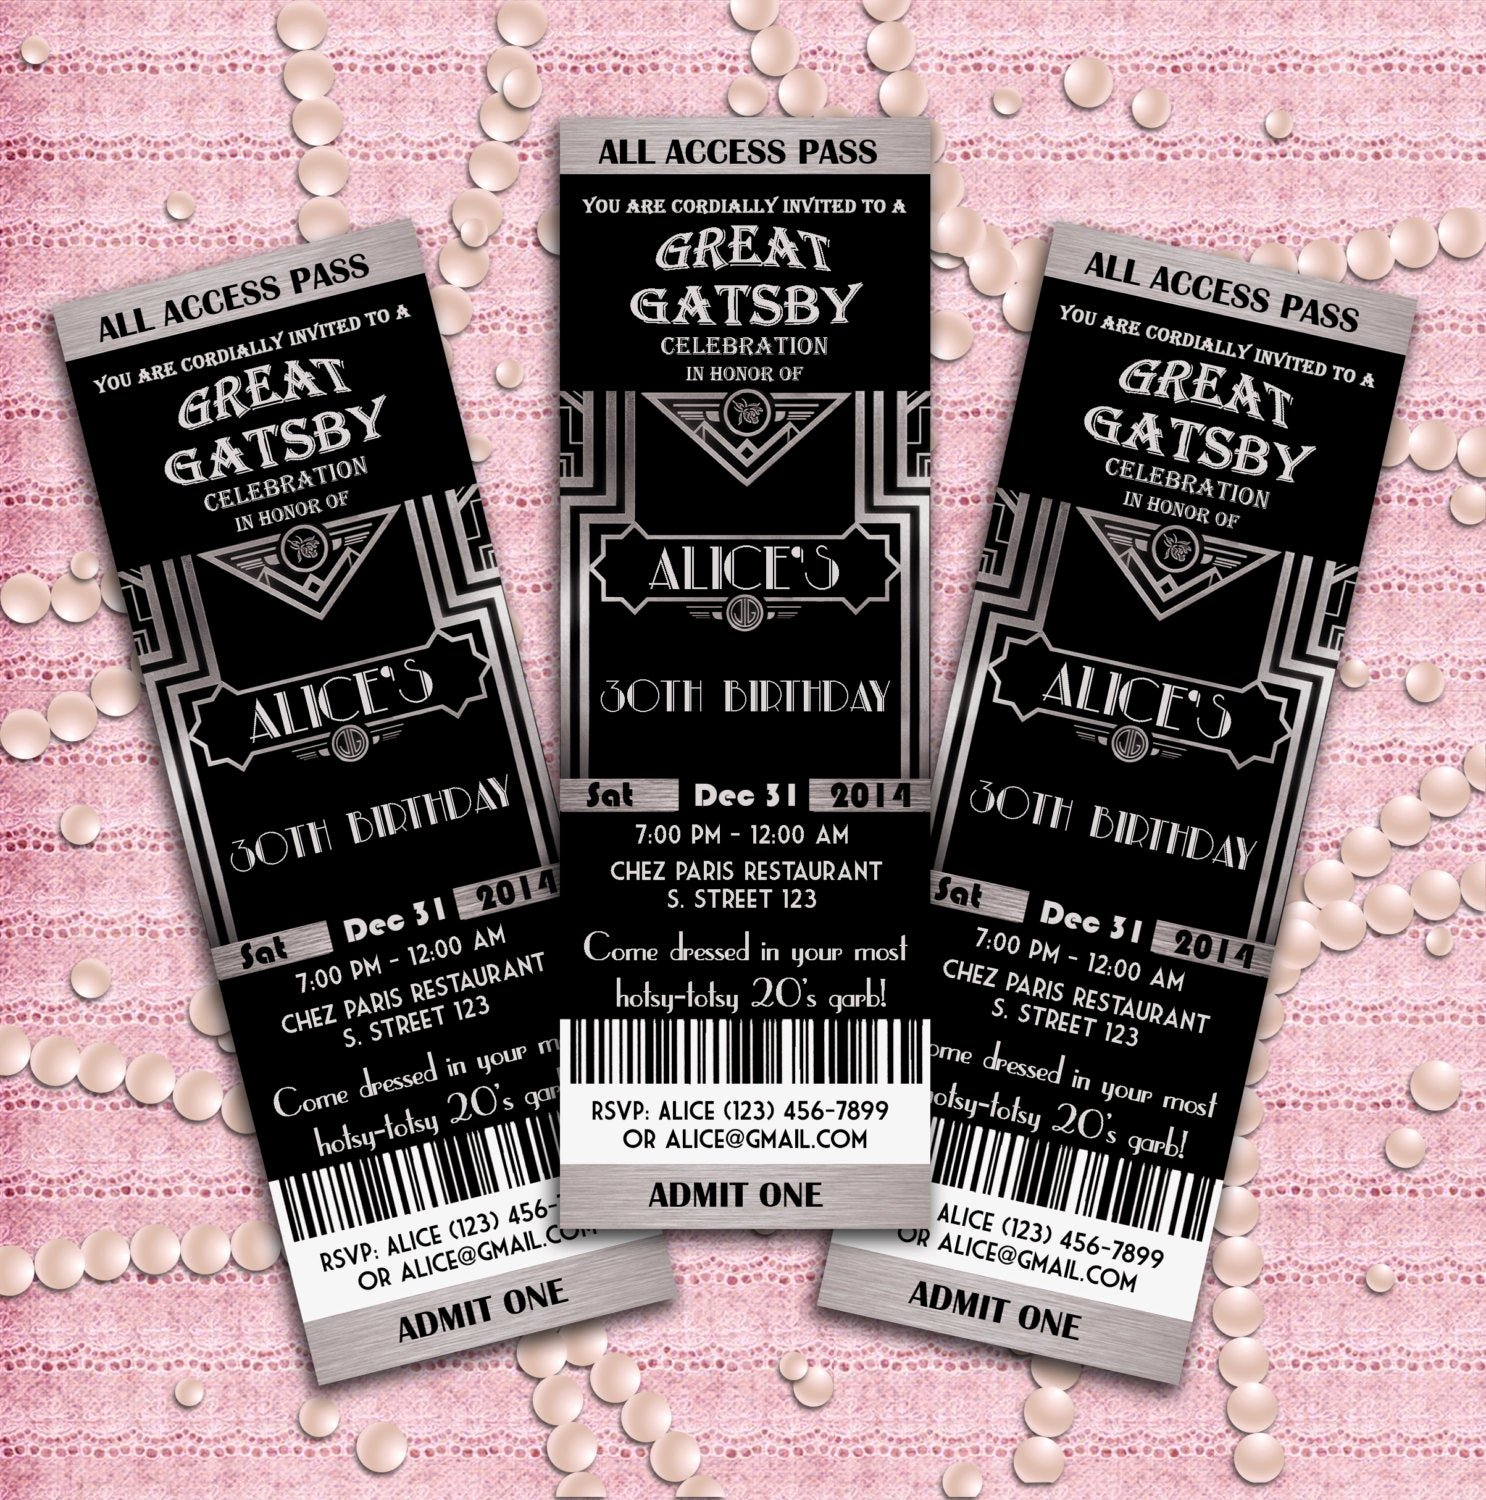 Great Gatsby Prom Invitations Elegant Great Gatsby Style Art Deco Party Invitation Prom